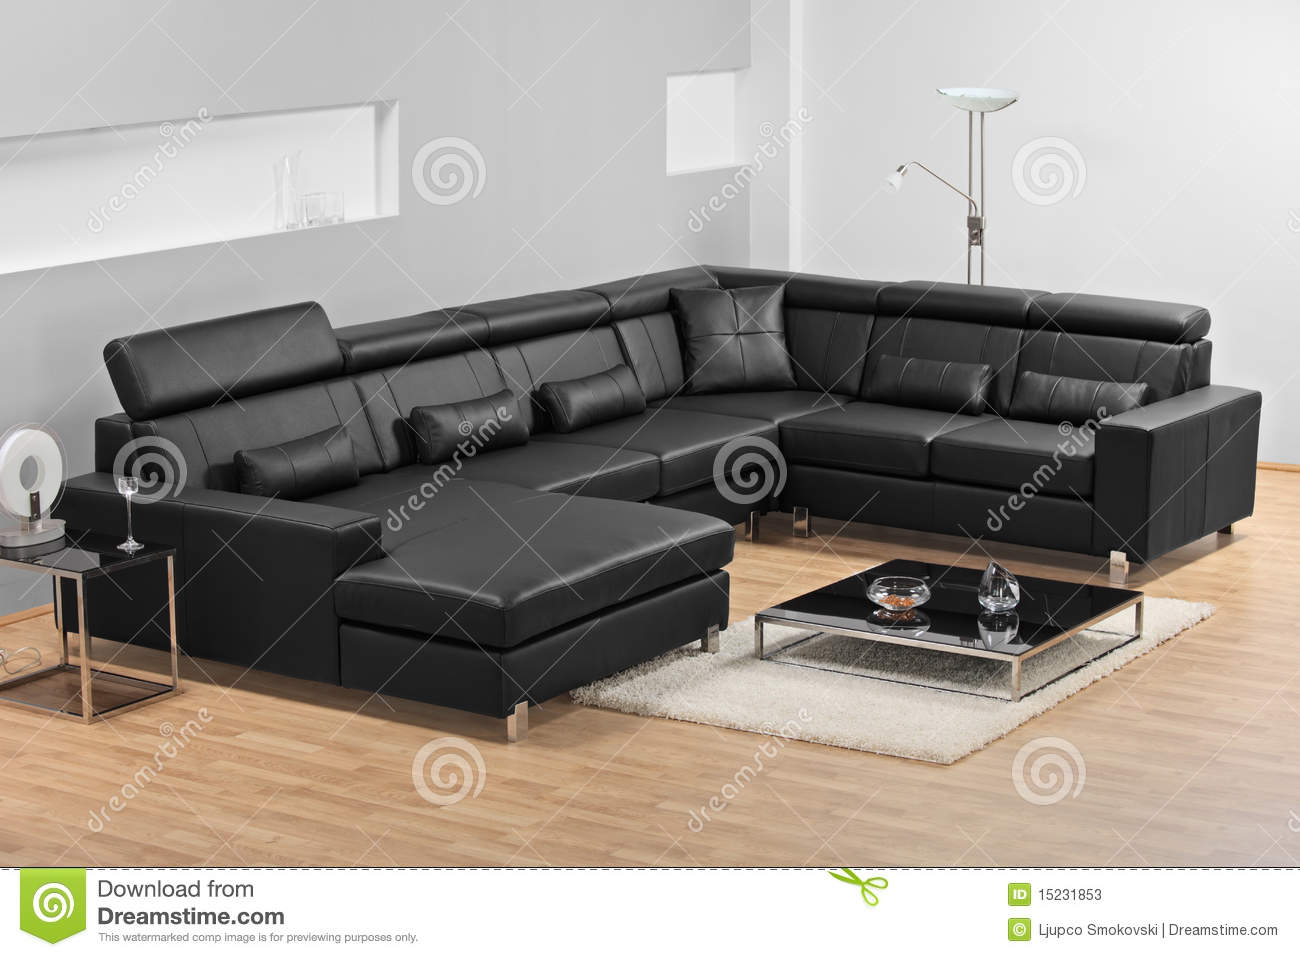 A Modern Minimalist Living Room With Leather Sofa Stock Image Image Of Indoor Illumination